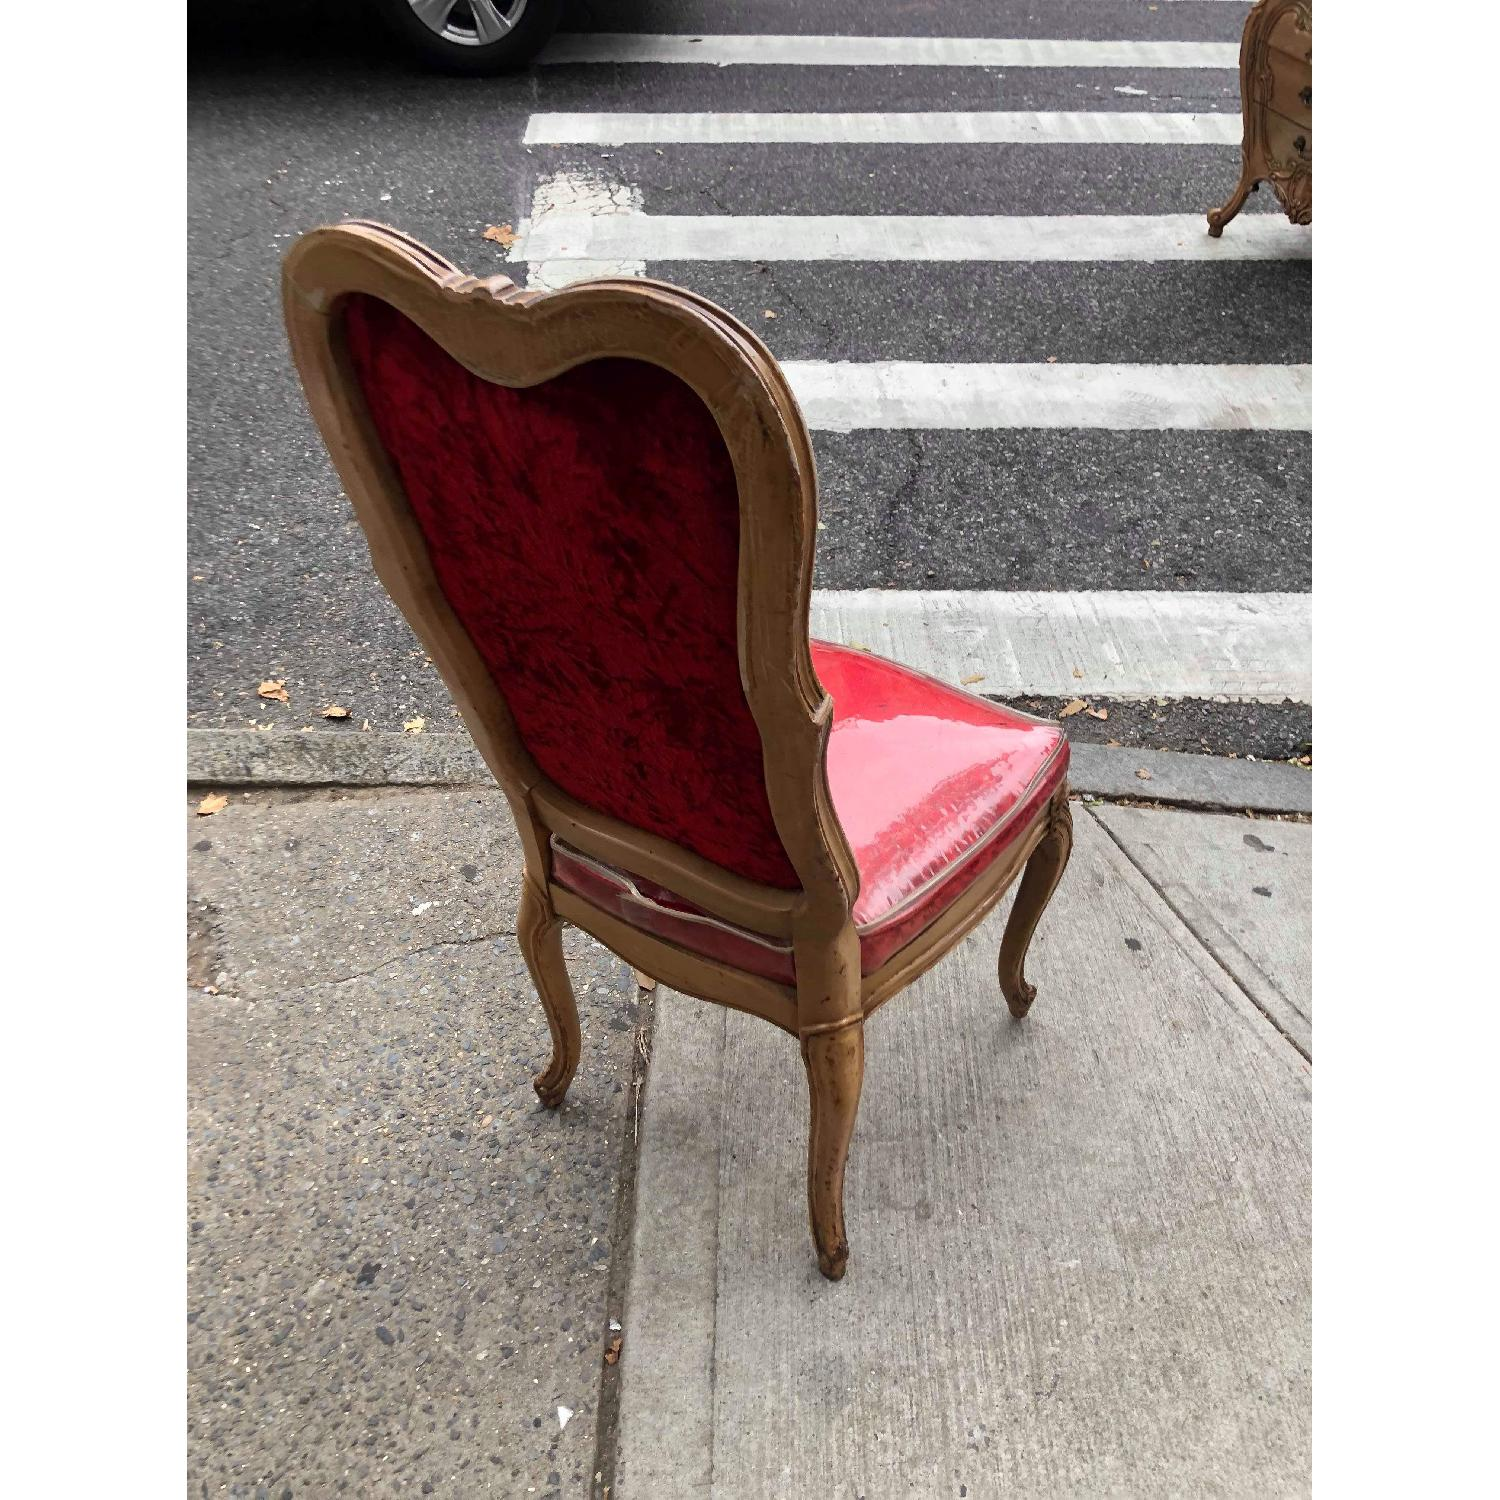 Vintage French Style Red Chair